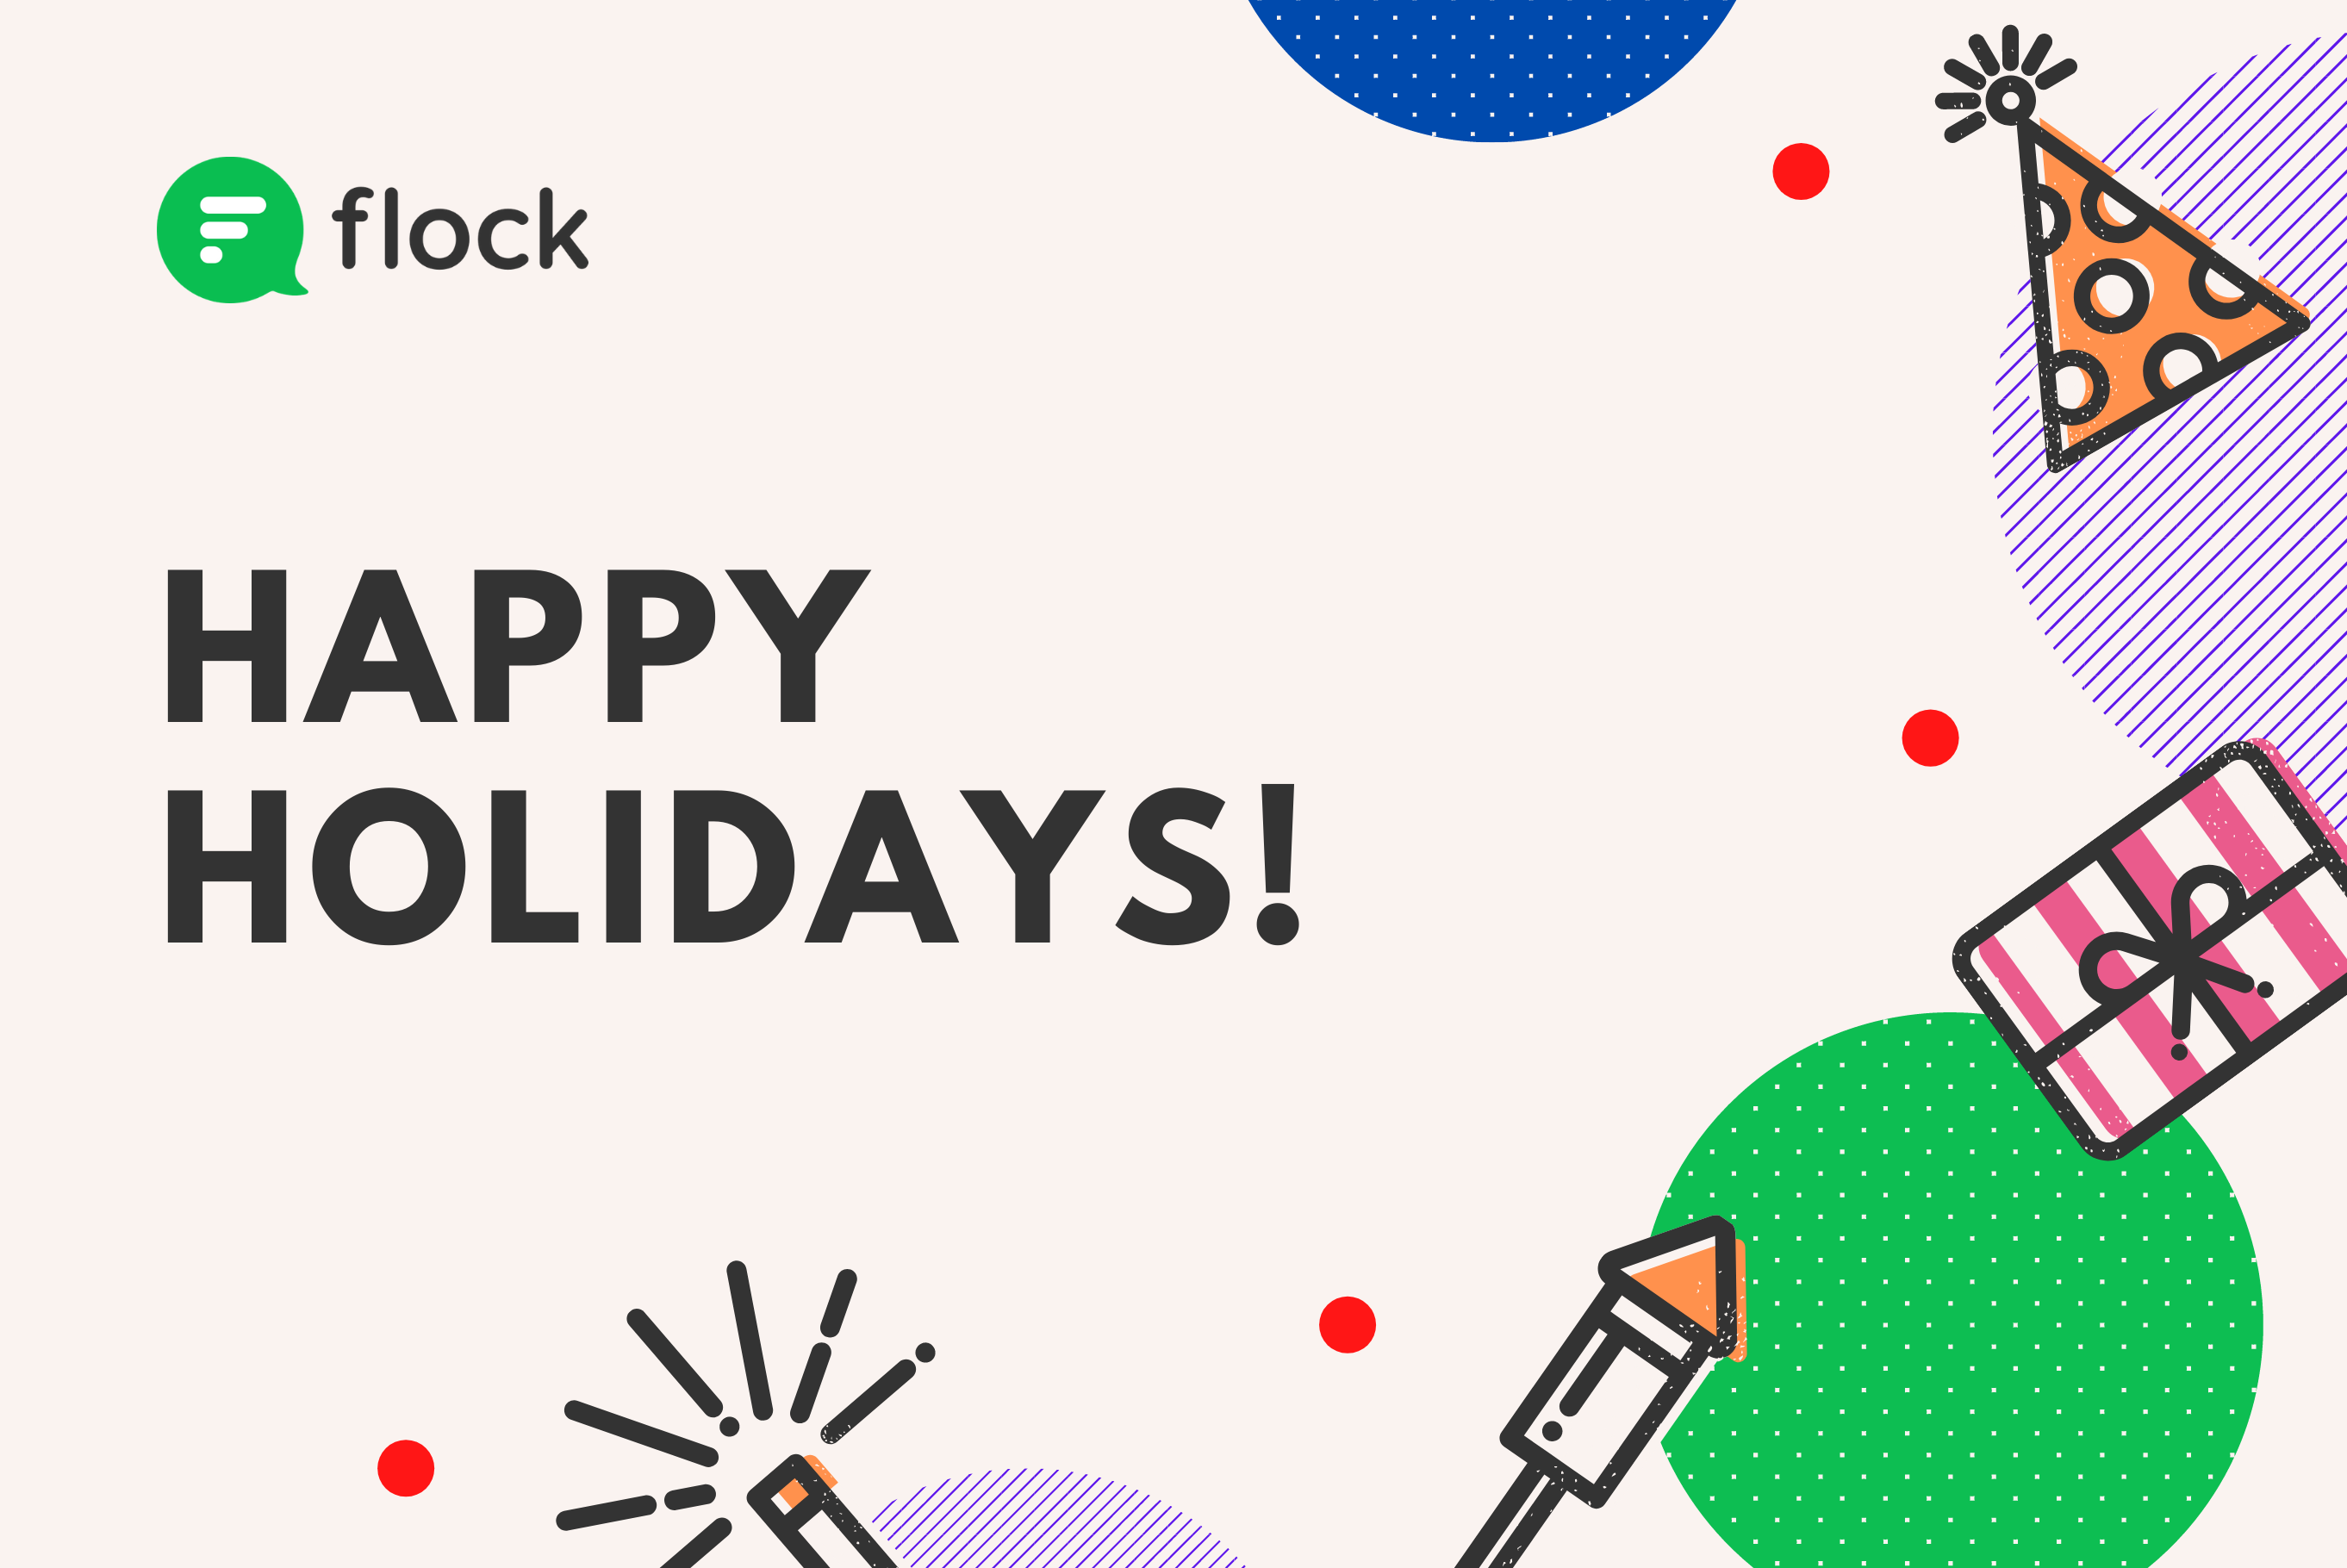 Happy Holidays from Team Flock!